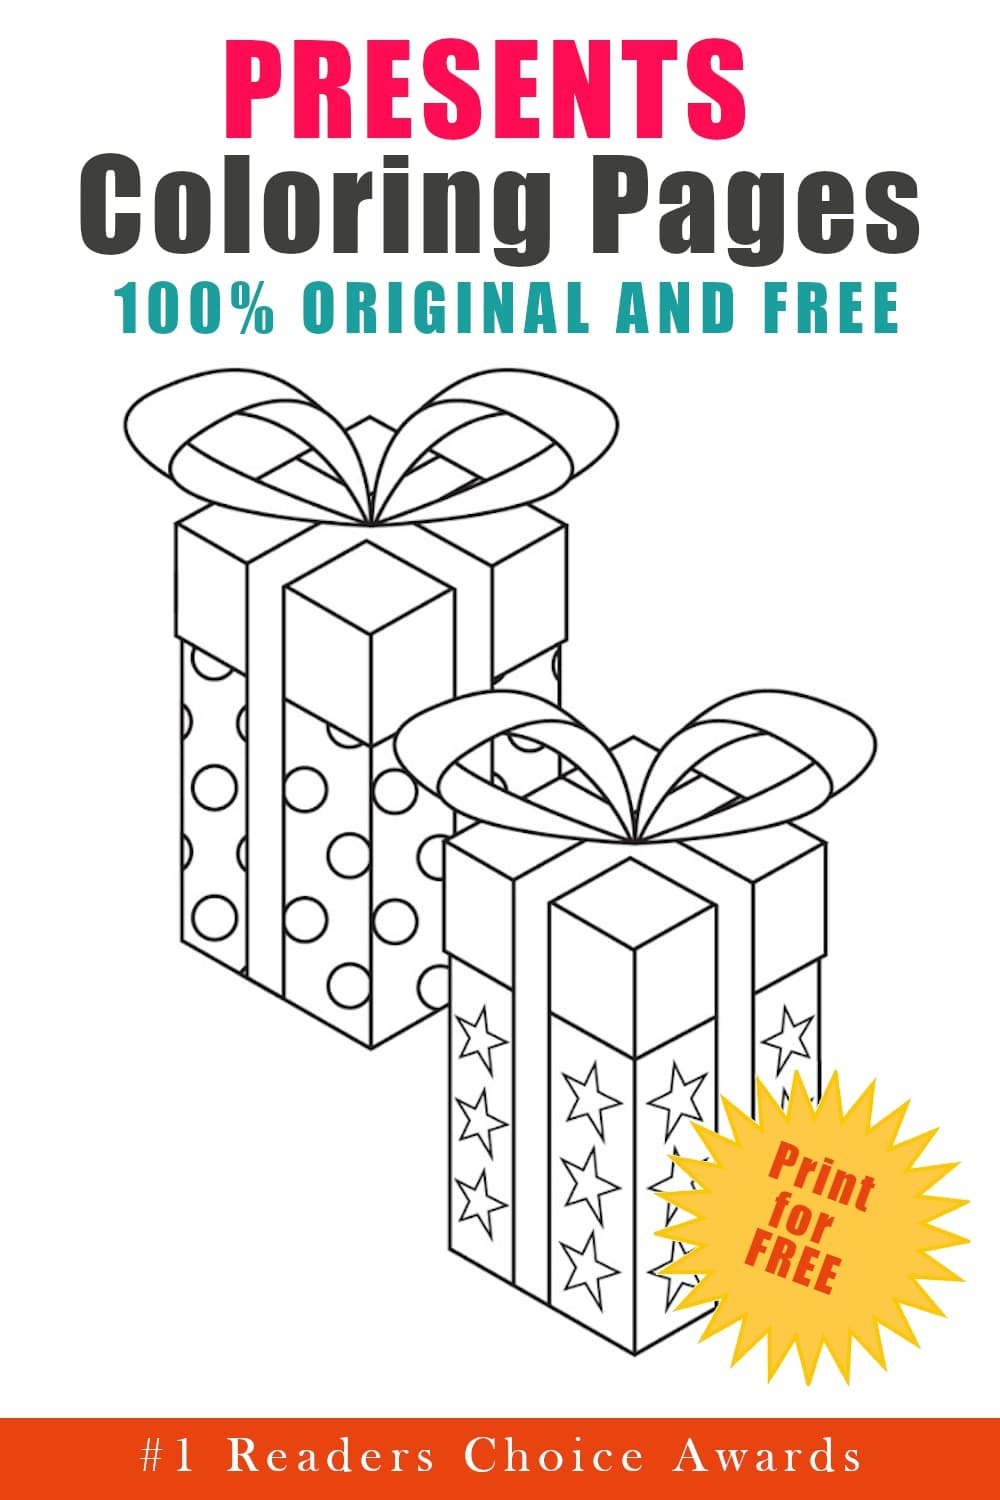 original and free christmas presents coloring pages